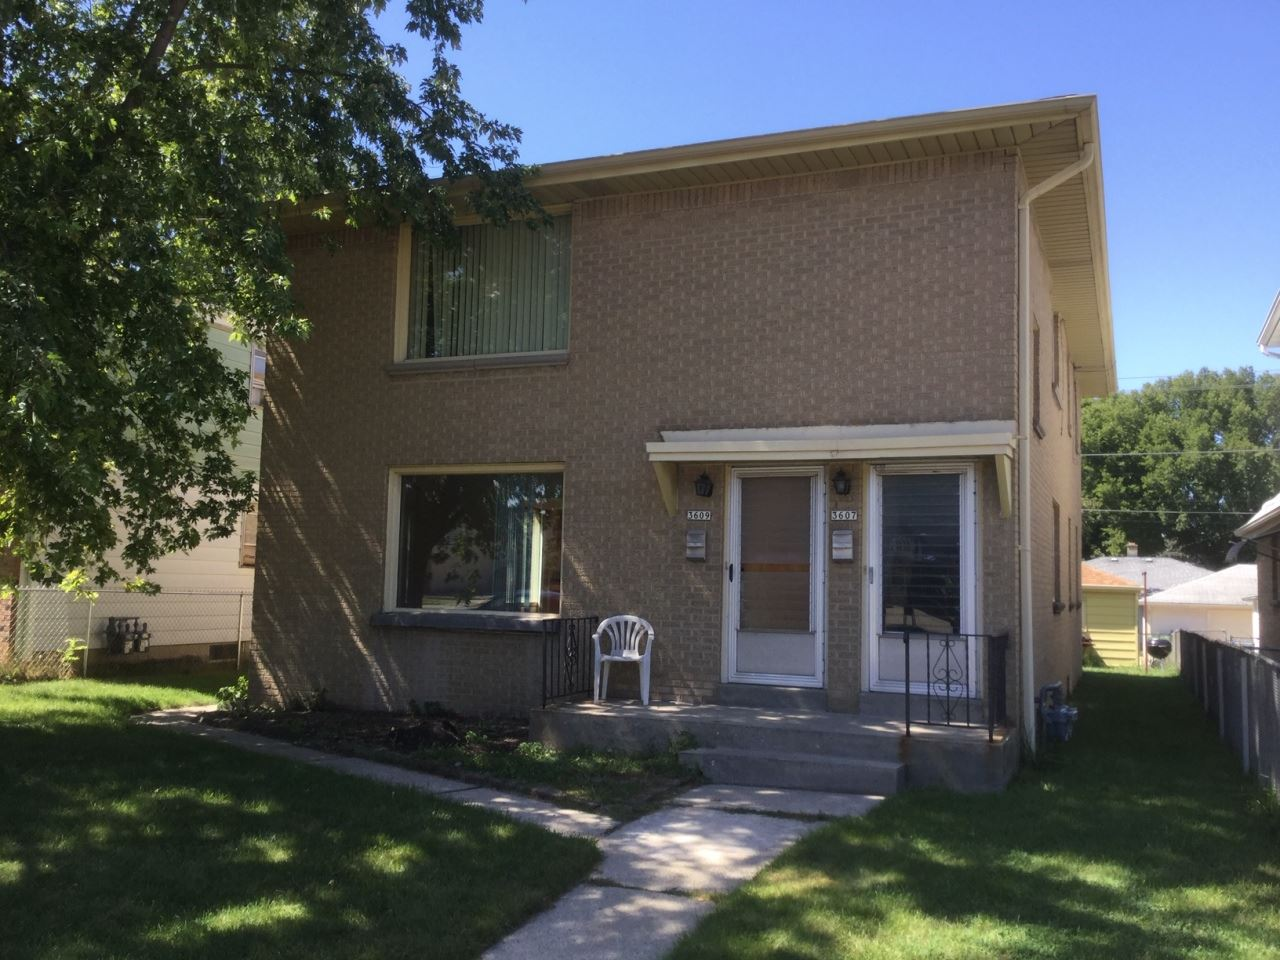 3607 S Clement Ave #3609, Milwaukee, WI 53207 - #: 1708238